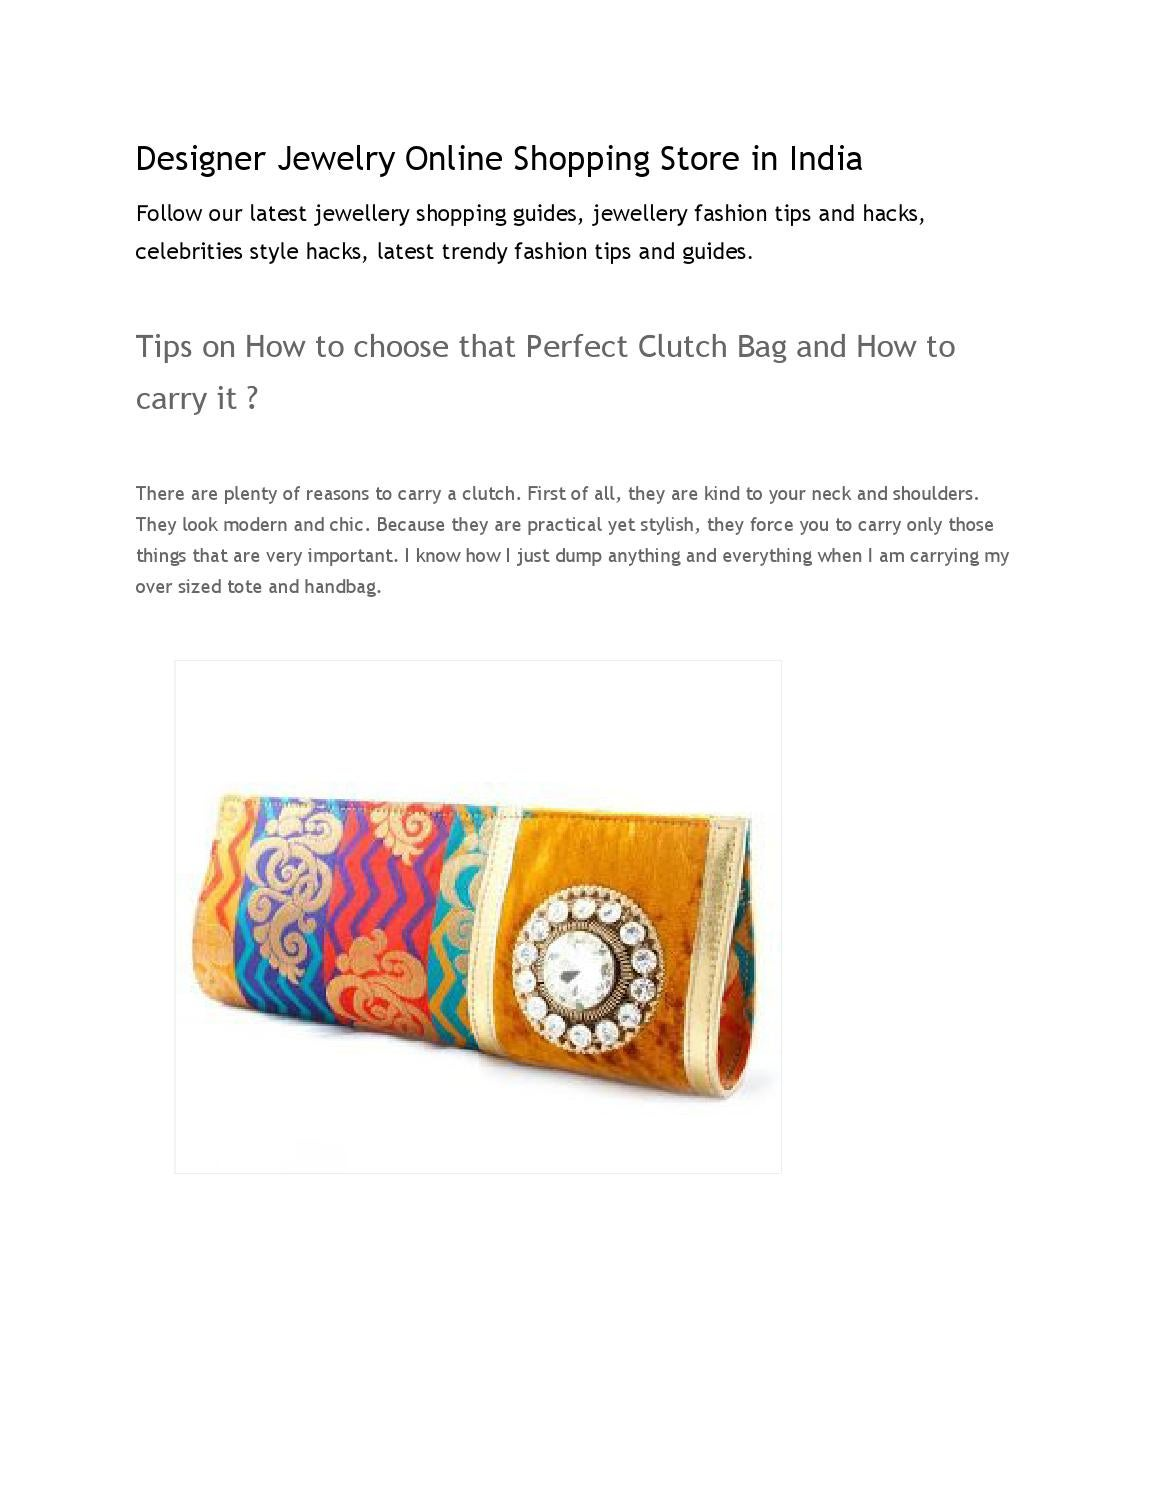 Tips on how to choose that perfect clutch bag and how to ...